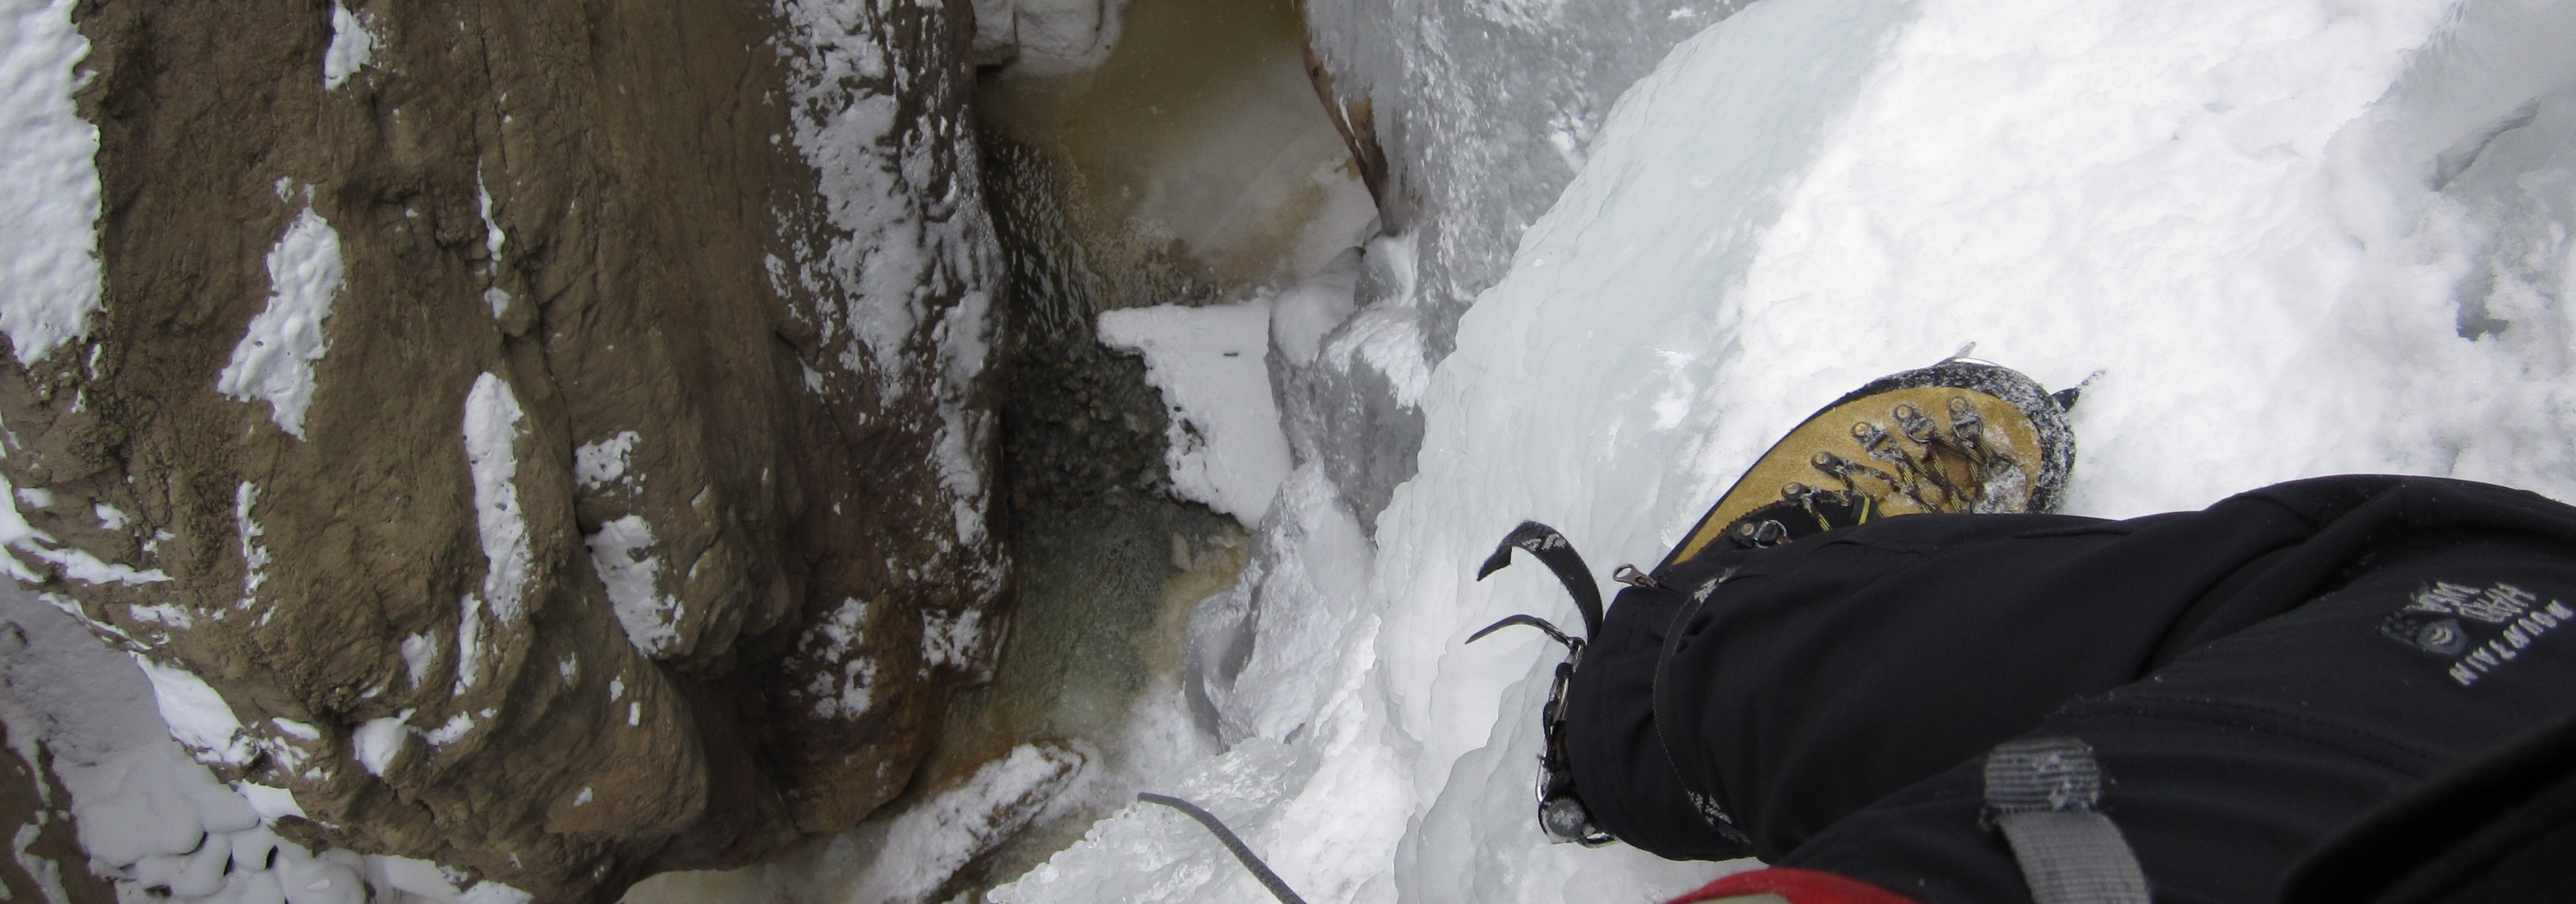 Ouray Ice Park Opening Day